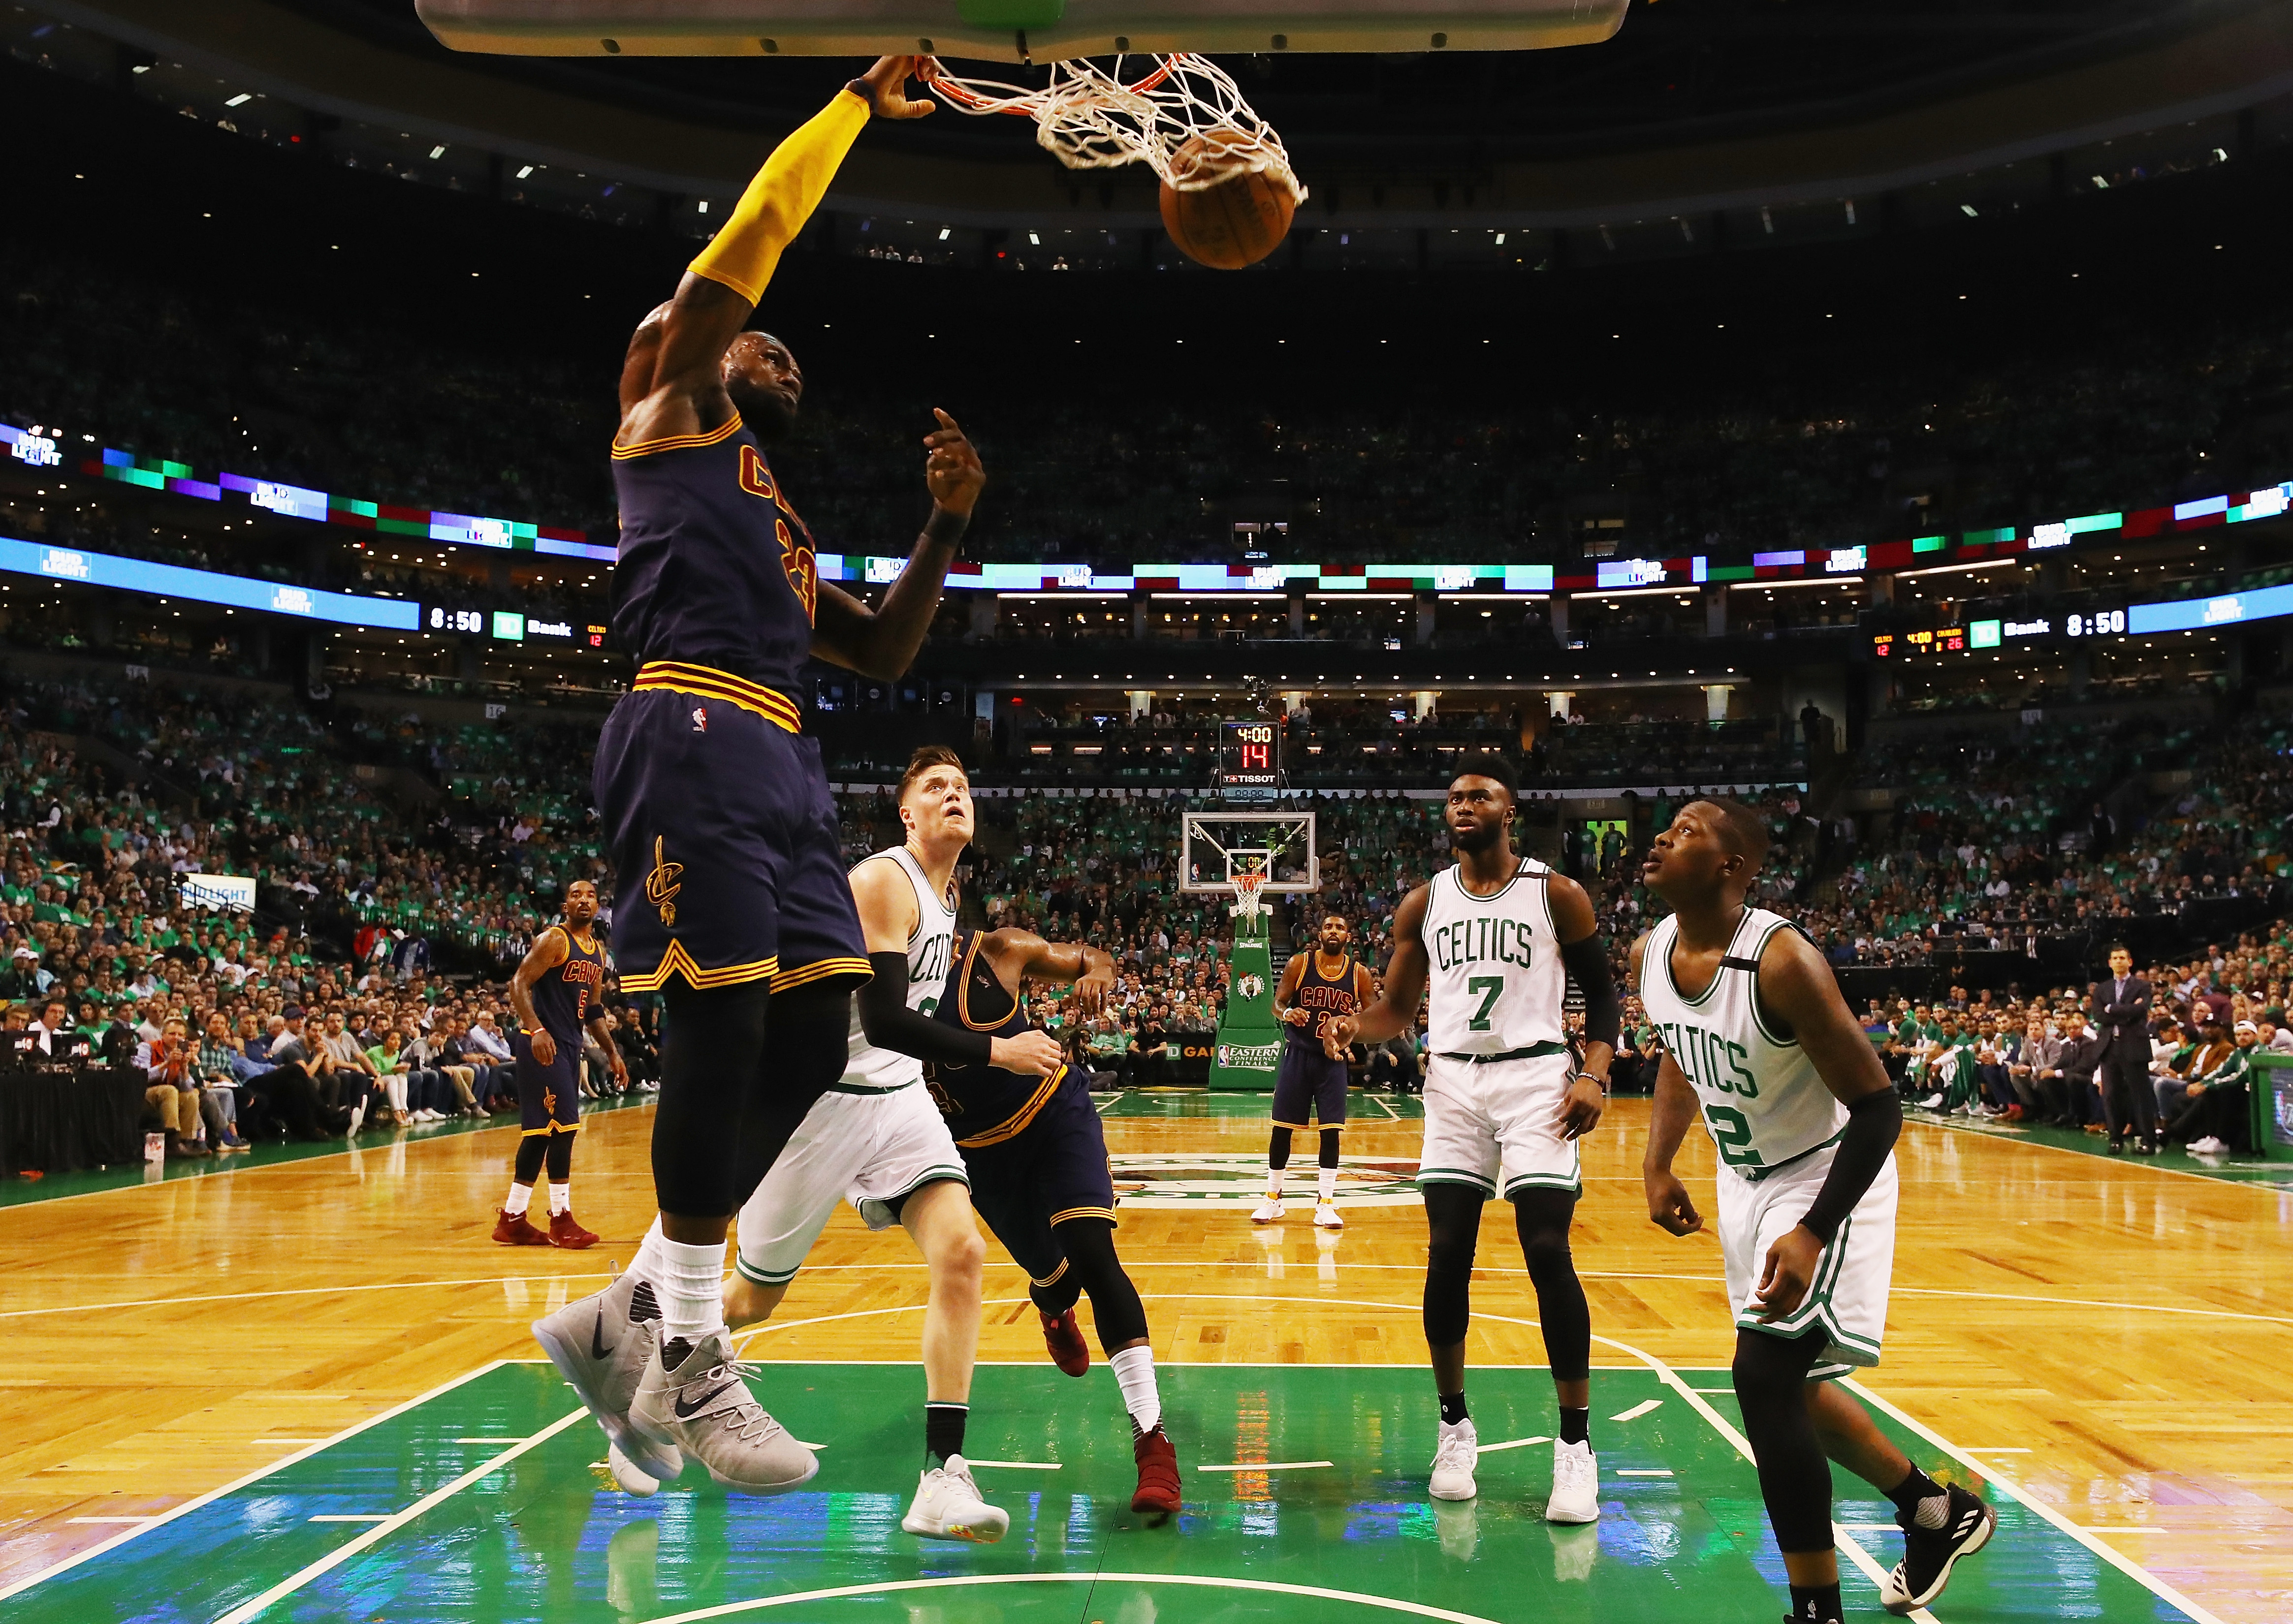 Cavs beat Celtics and look ahead to What's Next